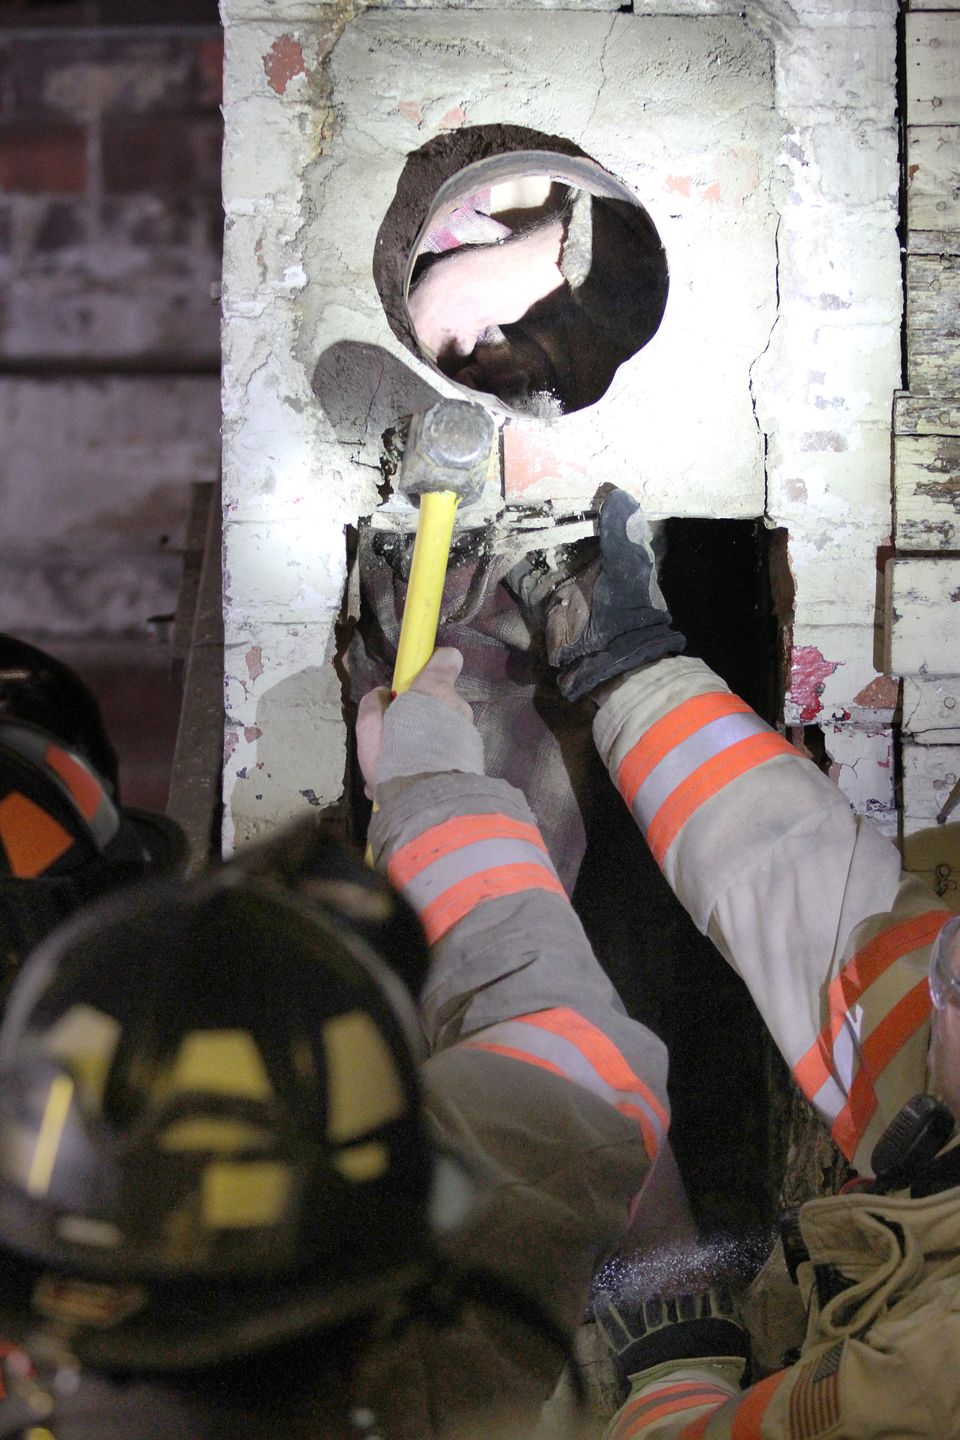 Firefighters free a man stuck inside a chimney at a redemption center in Carroll, Iowa.